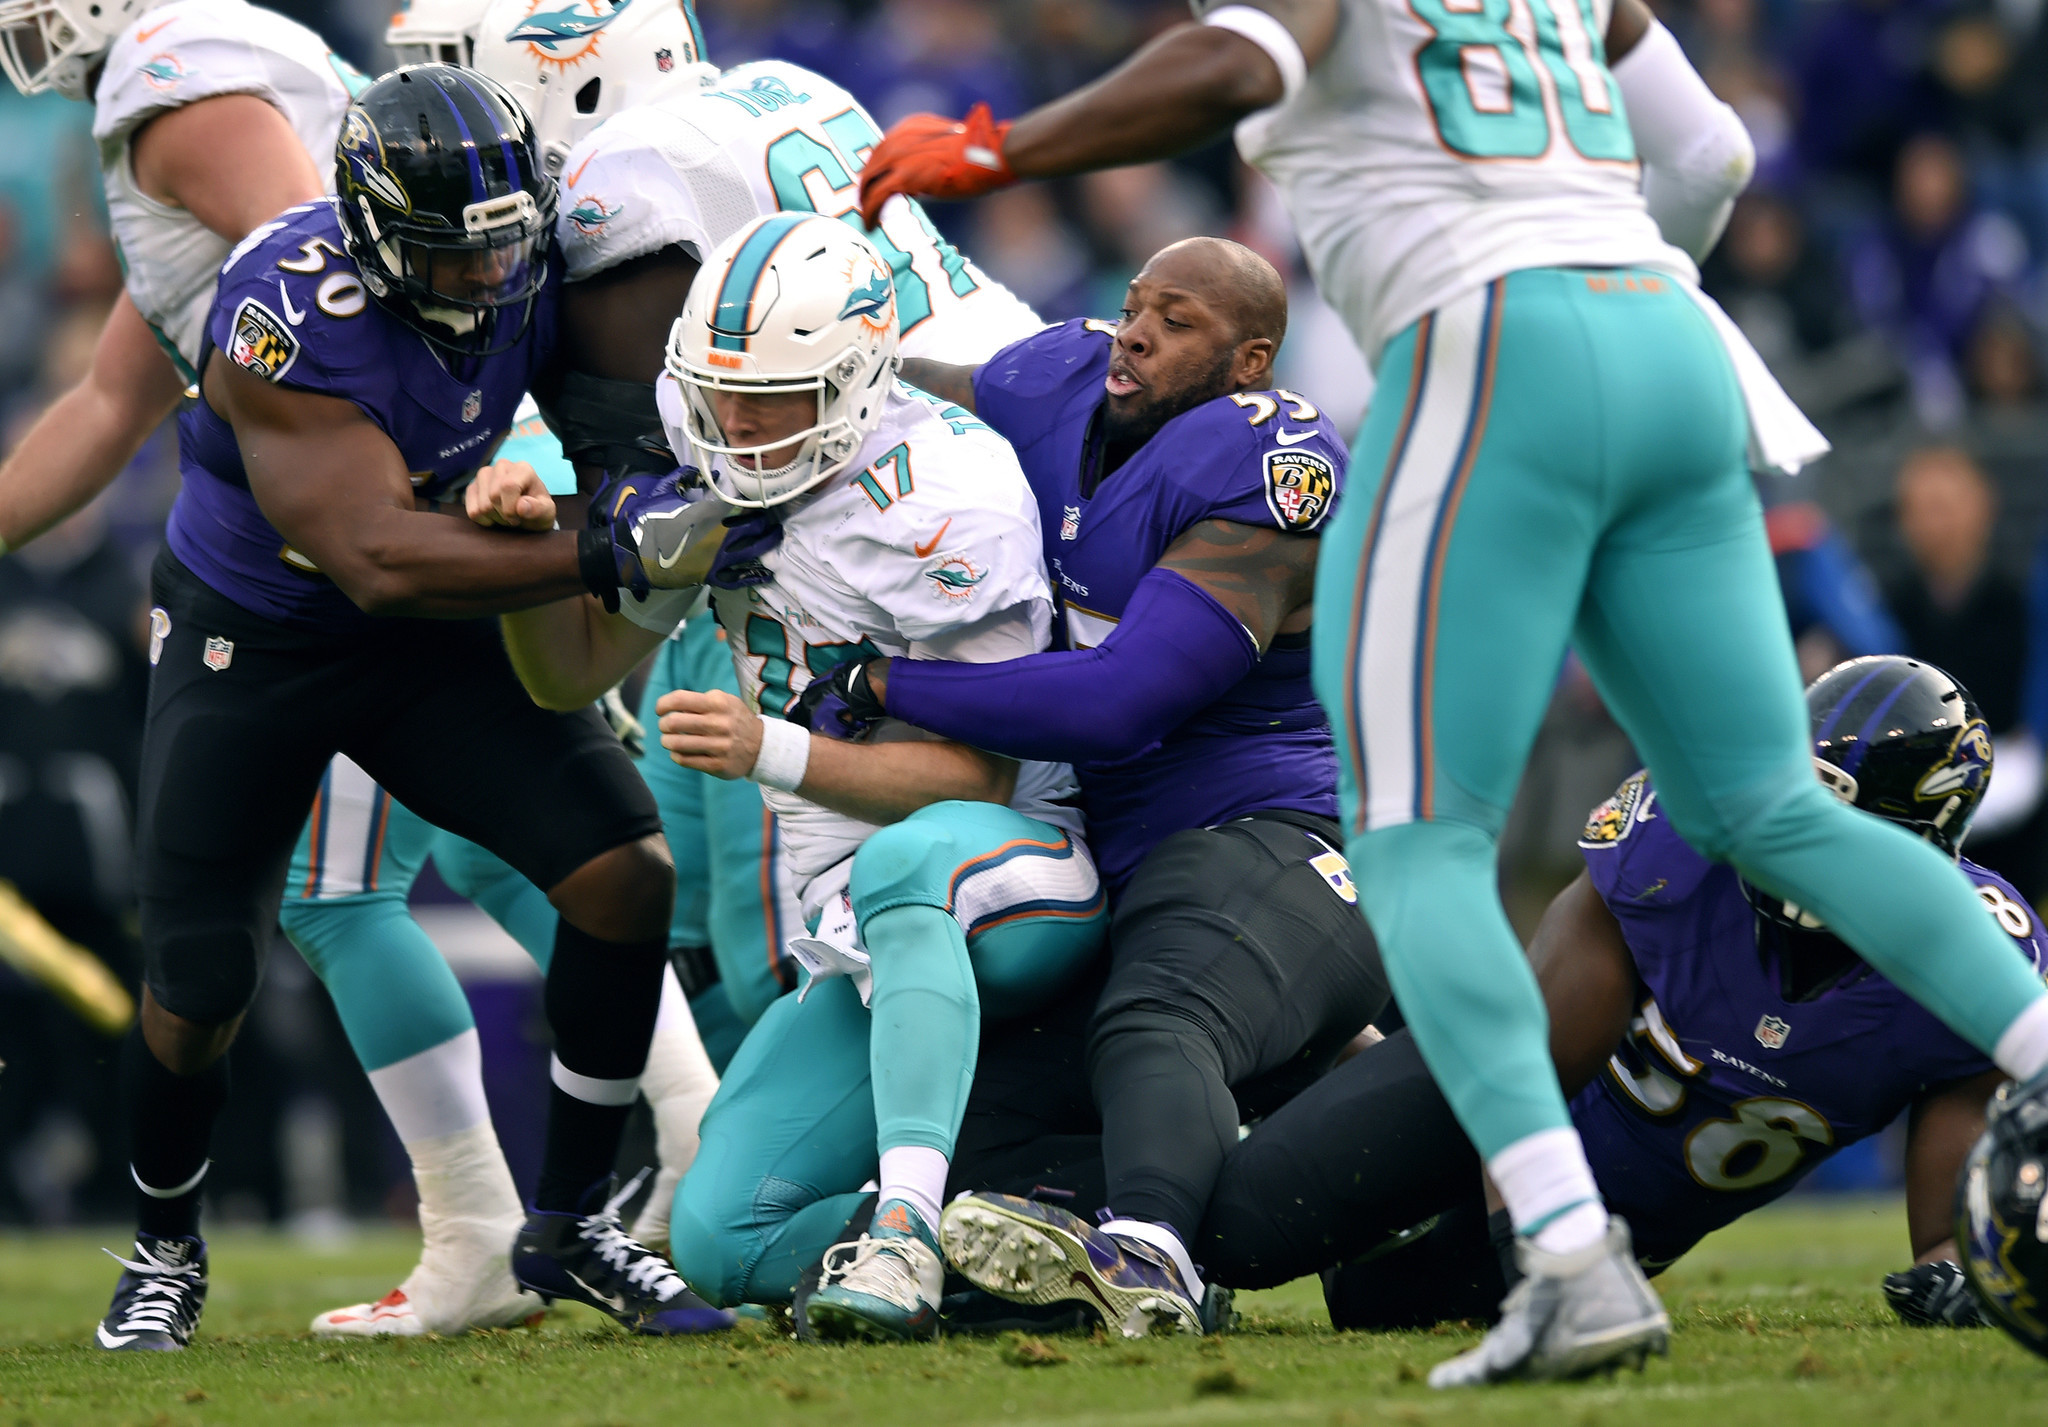 Fl-dolphins-notes-1205-20161204